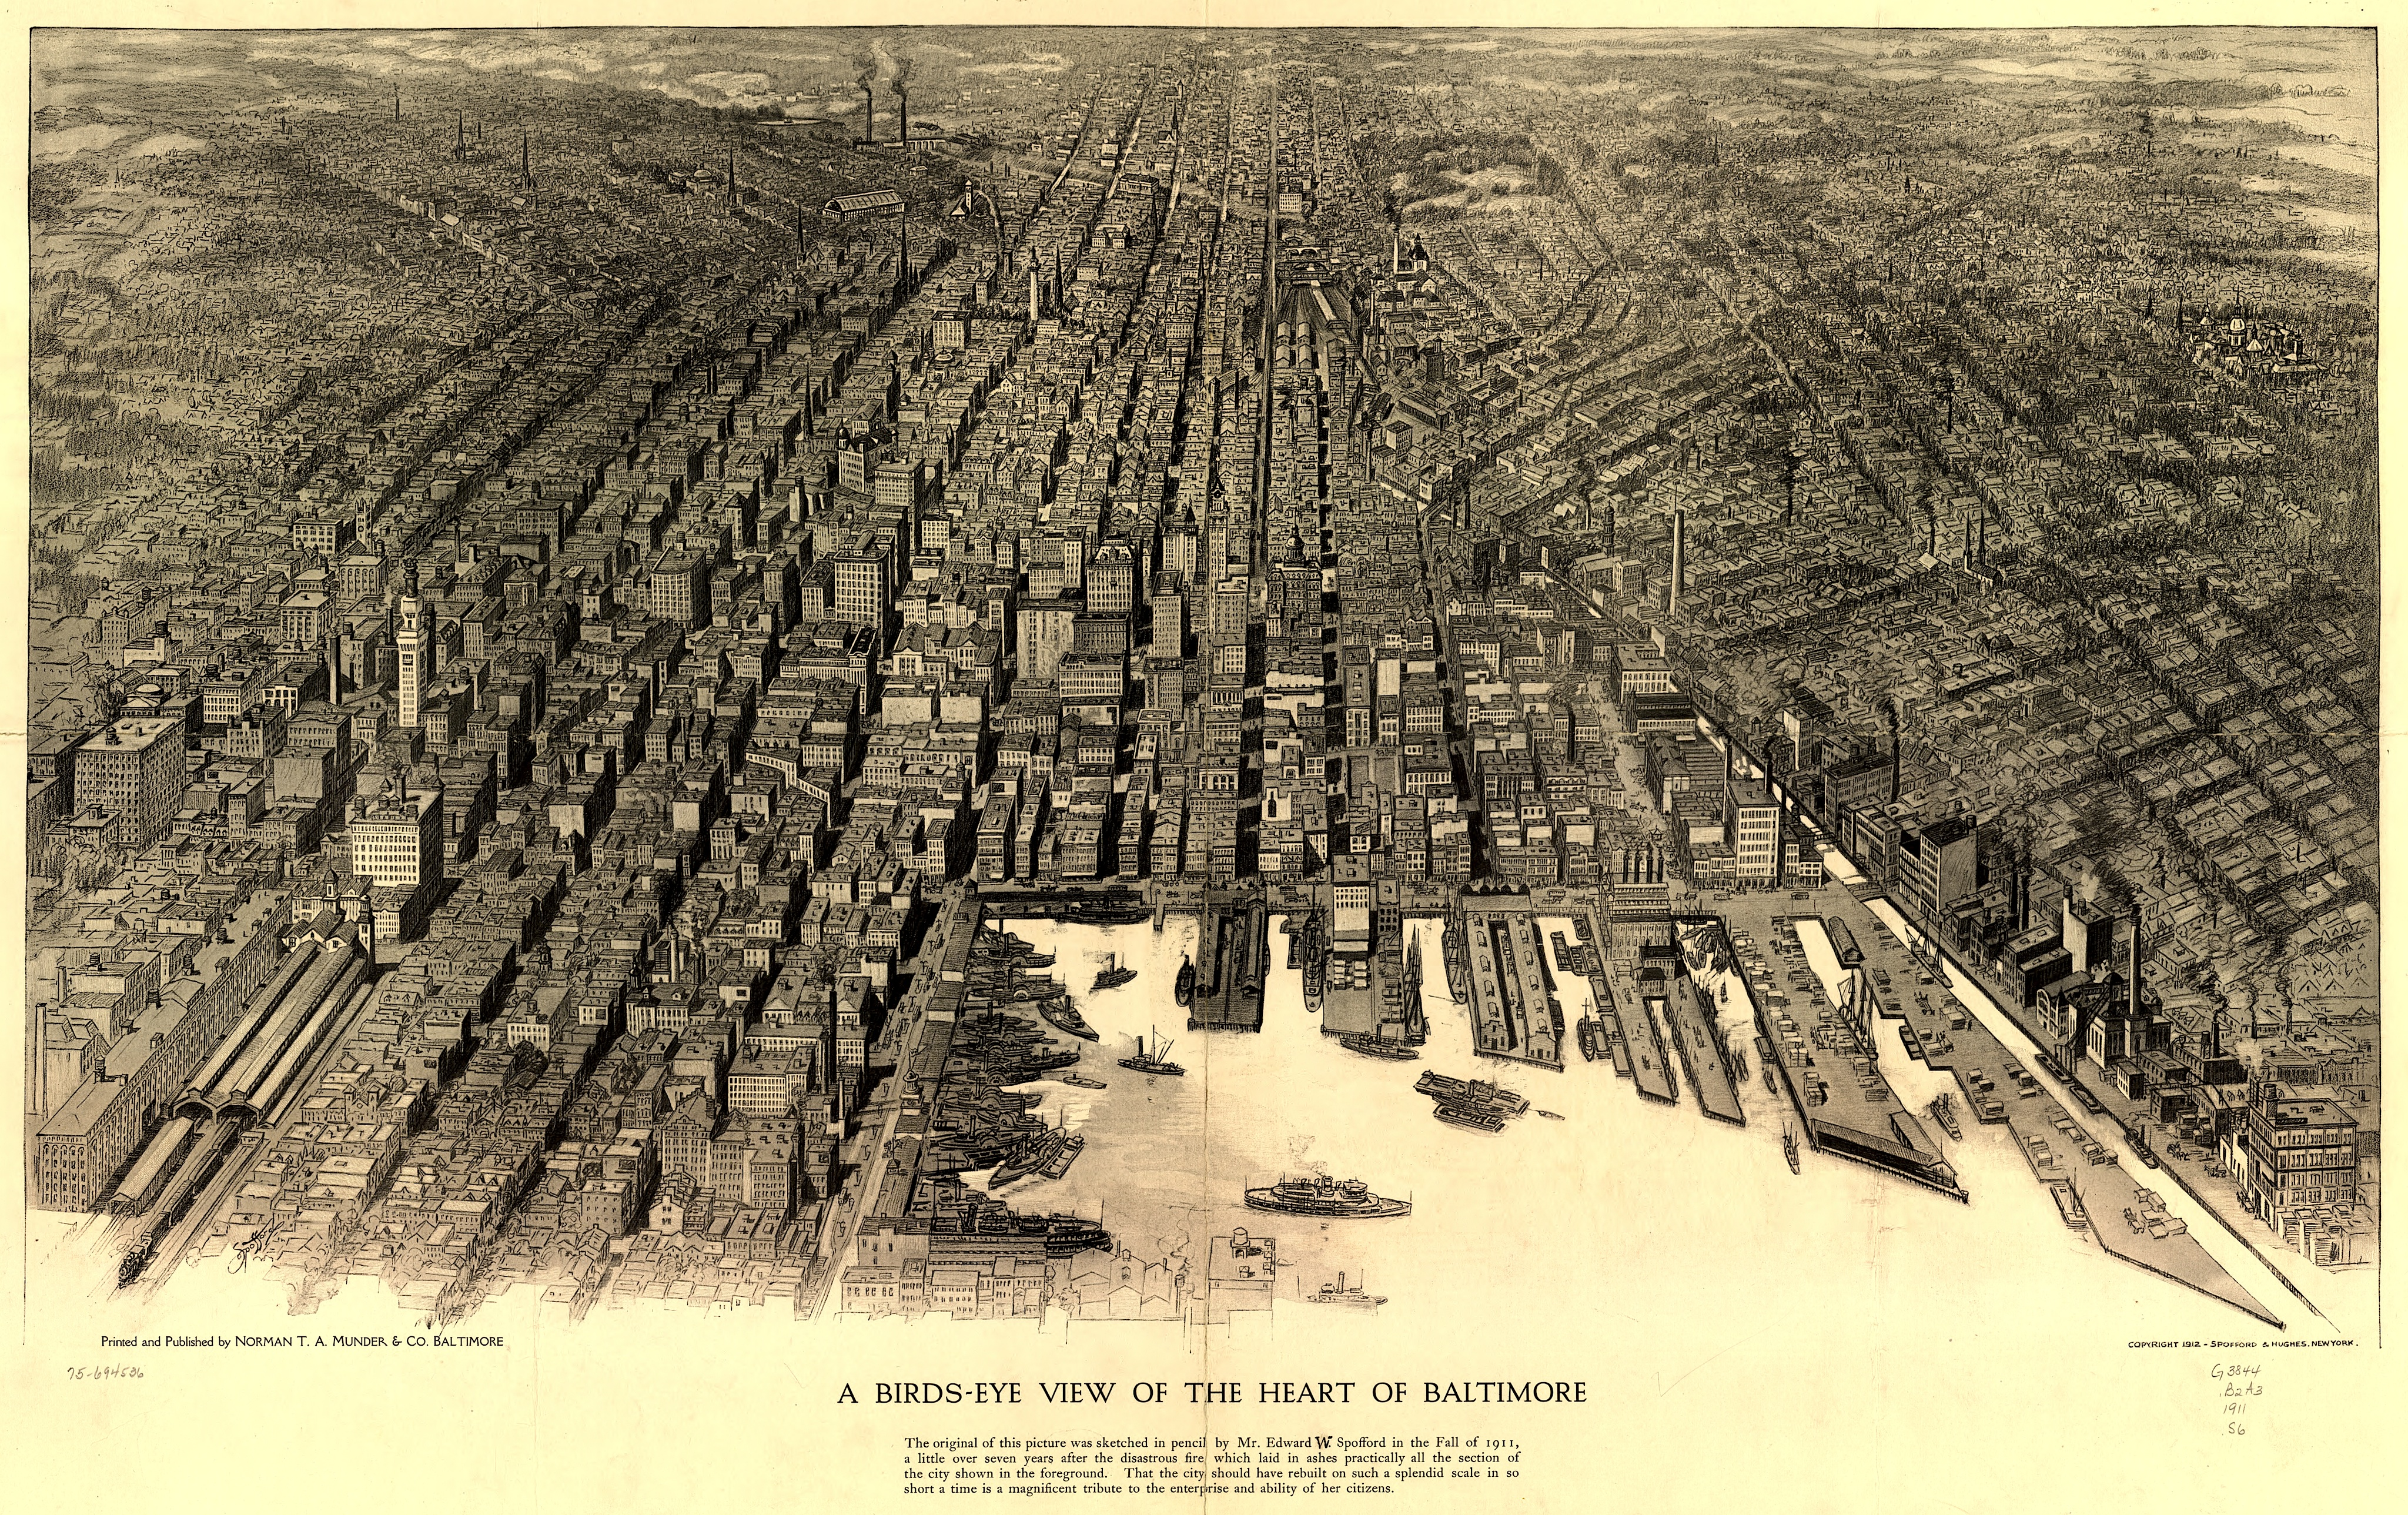 Incredibly Detailed 1912 Bird's-Eye View of Baltimore